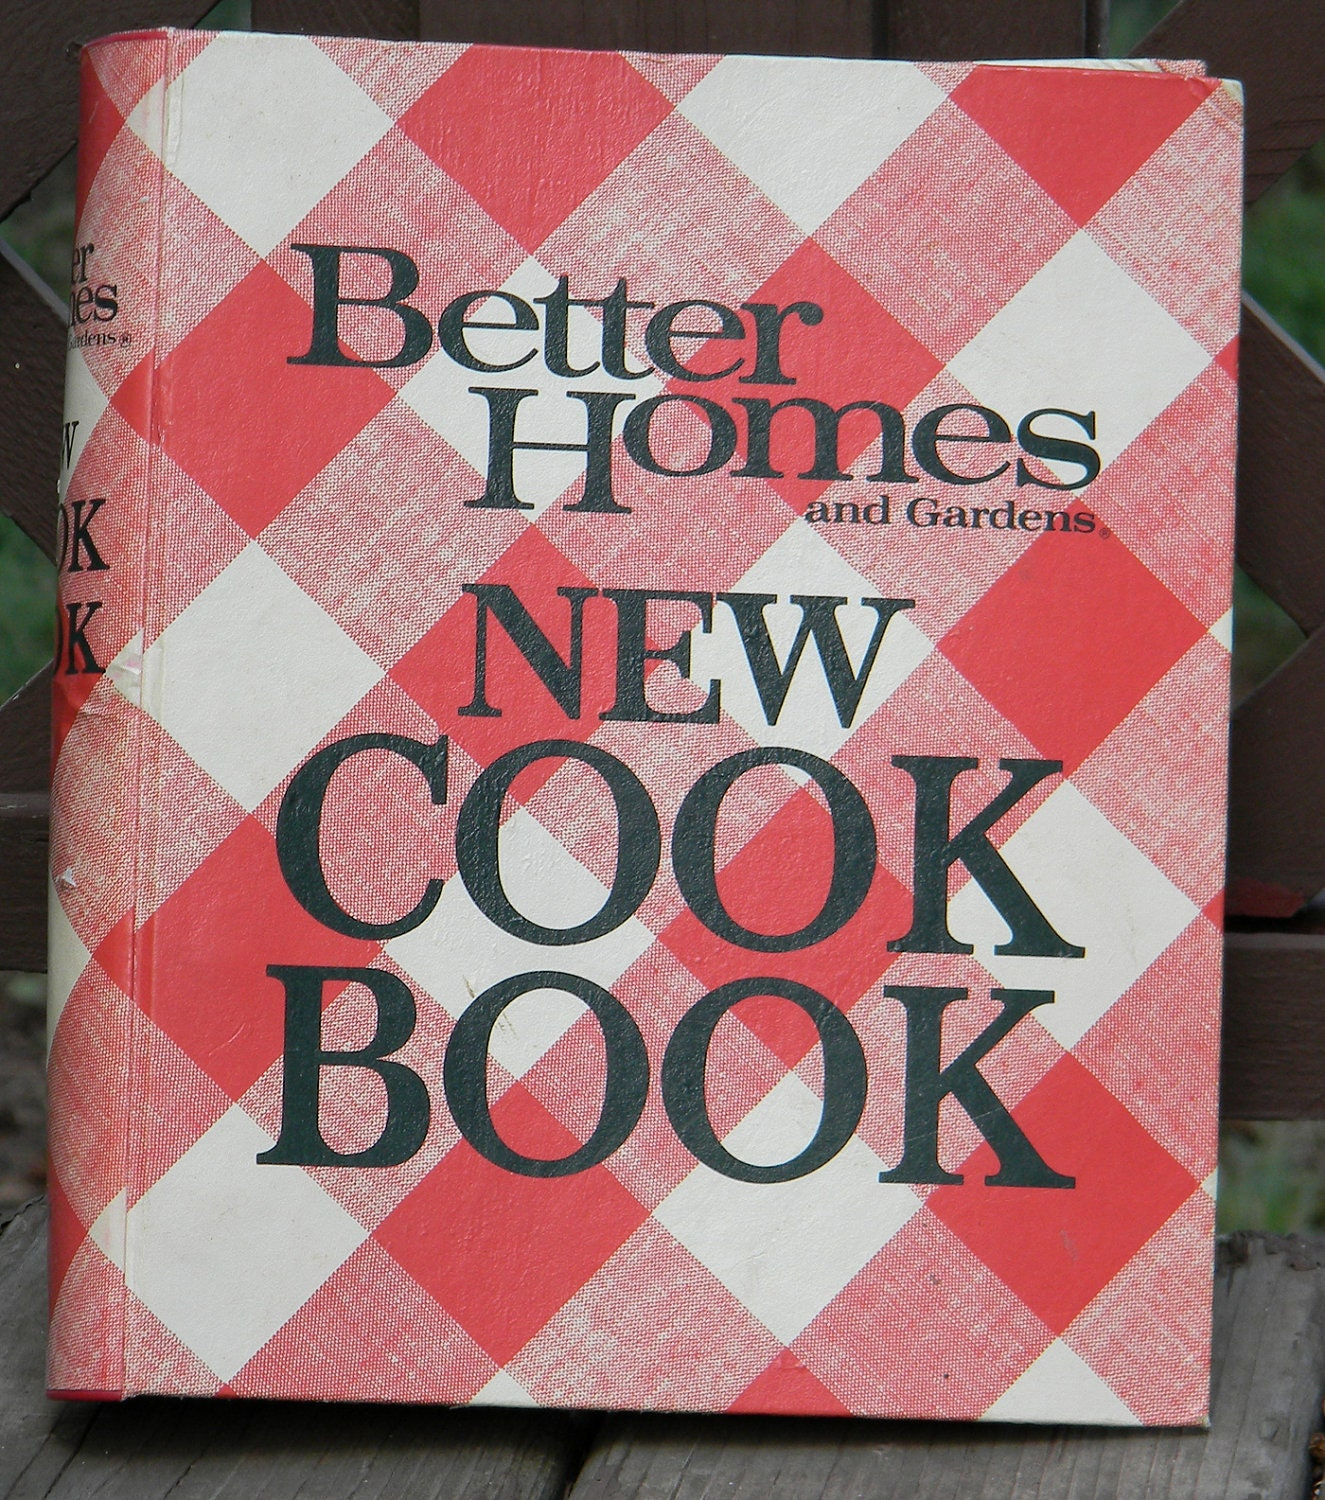 Better homes and gardens new cook book by junkism on etsy - Better homes and gardens cookbook 1968 ...